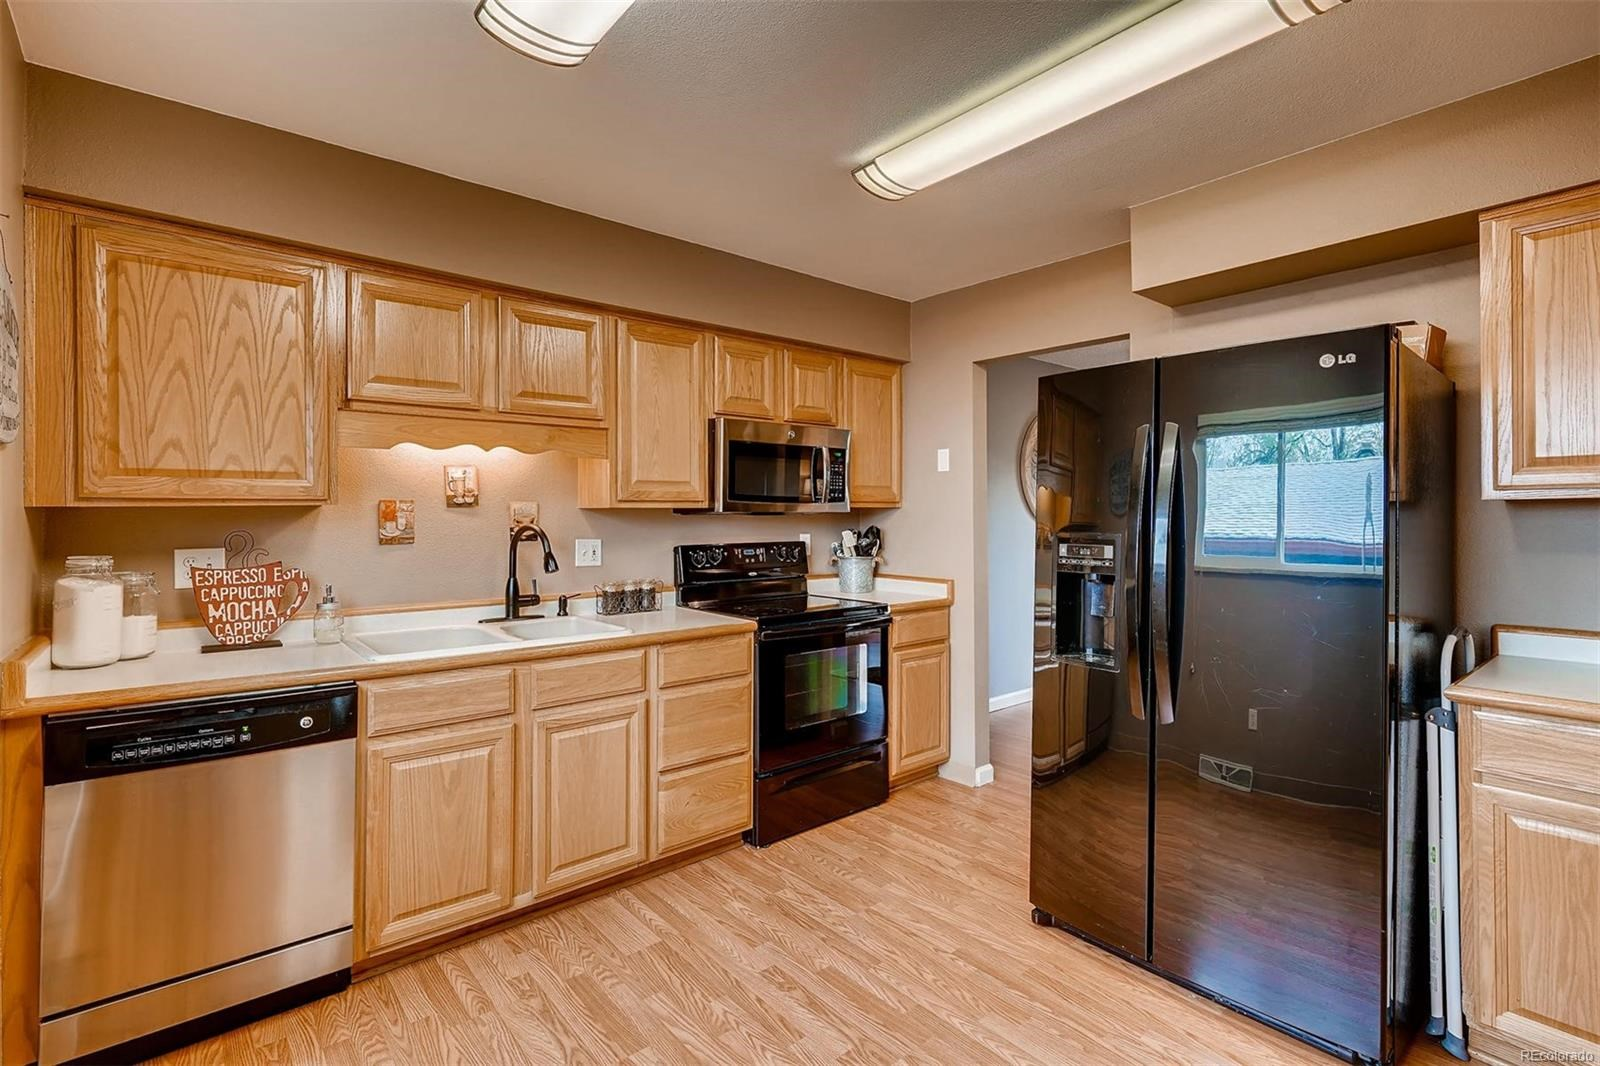 MLS# 6817254 - 1 - 6498  W 80th Drive, Arvada, CO 80003